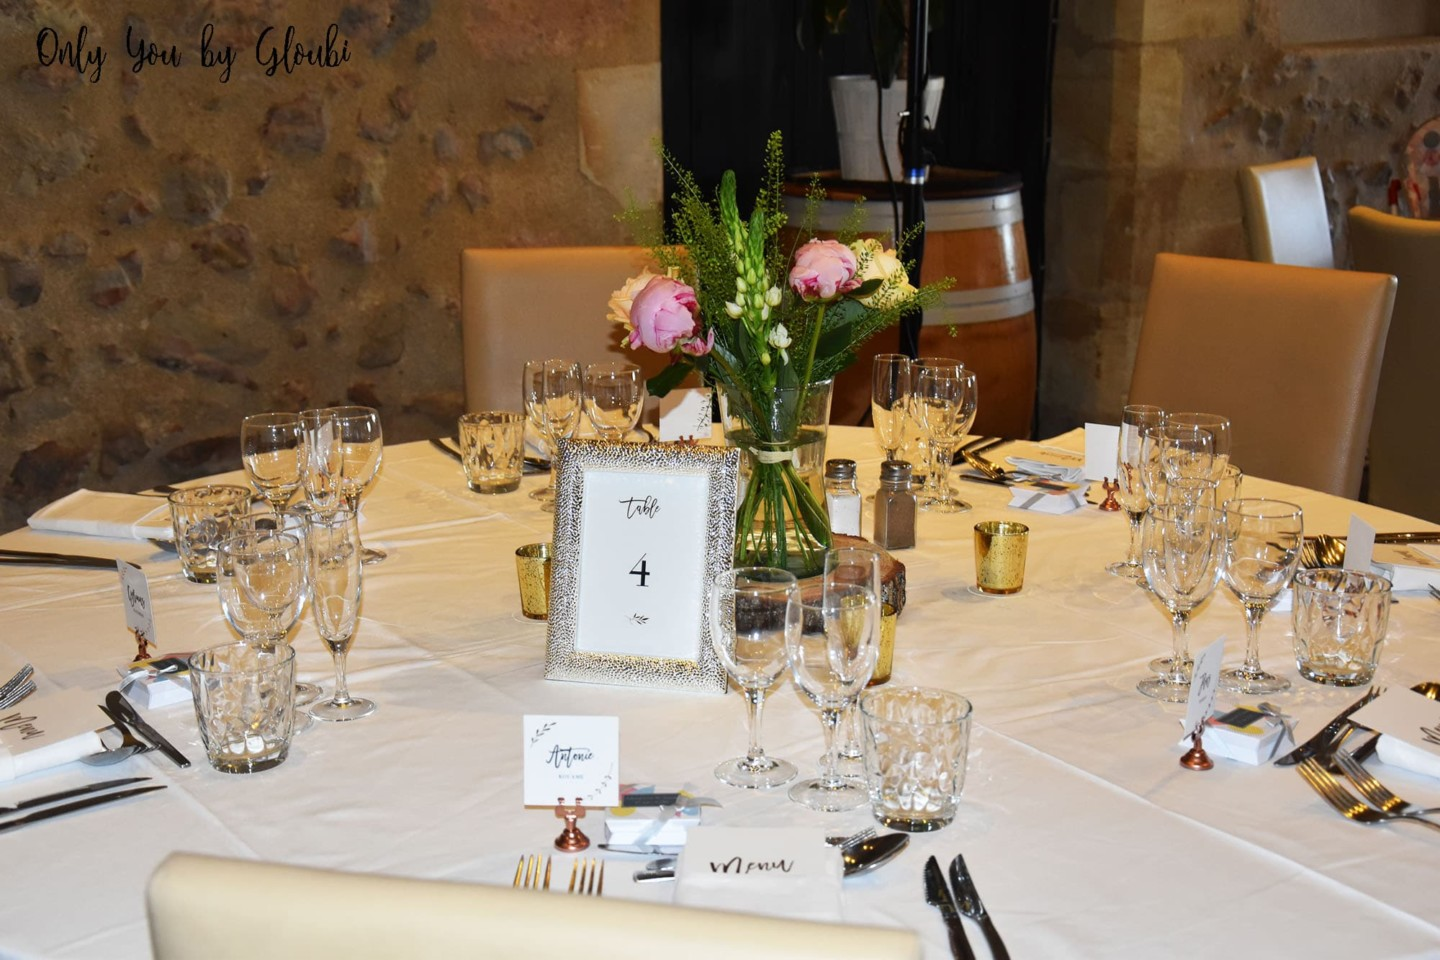 Mariage M&S Chic Elegant Only You by Gloubi 201